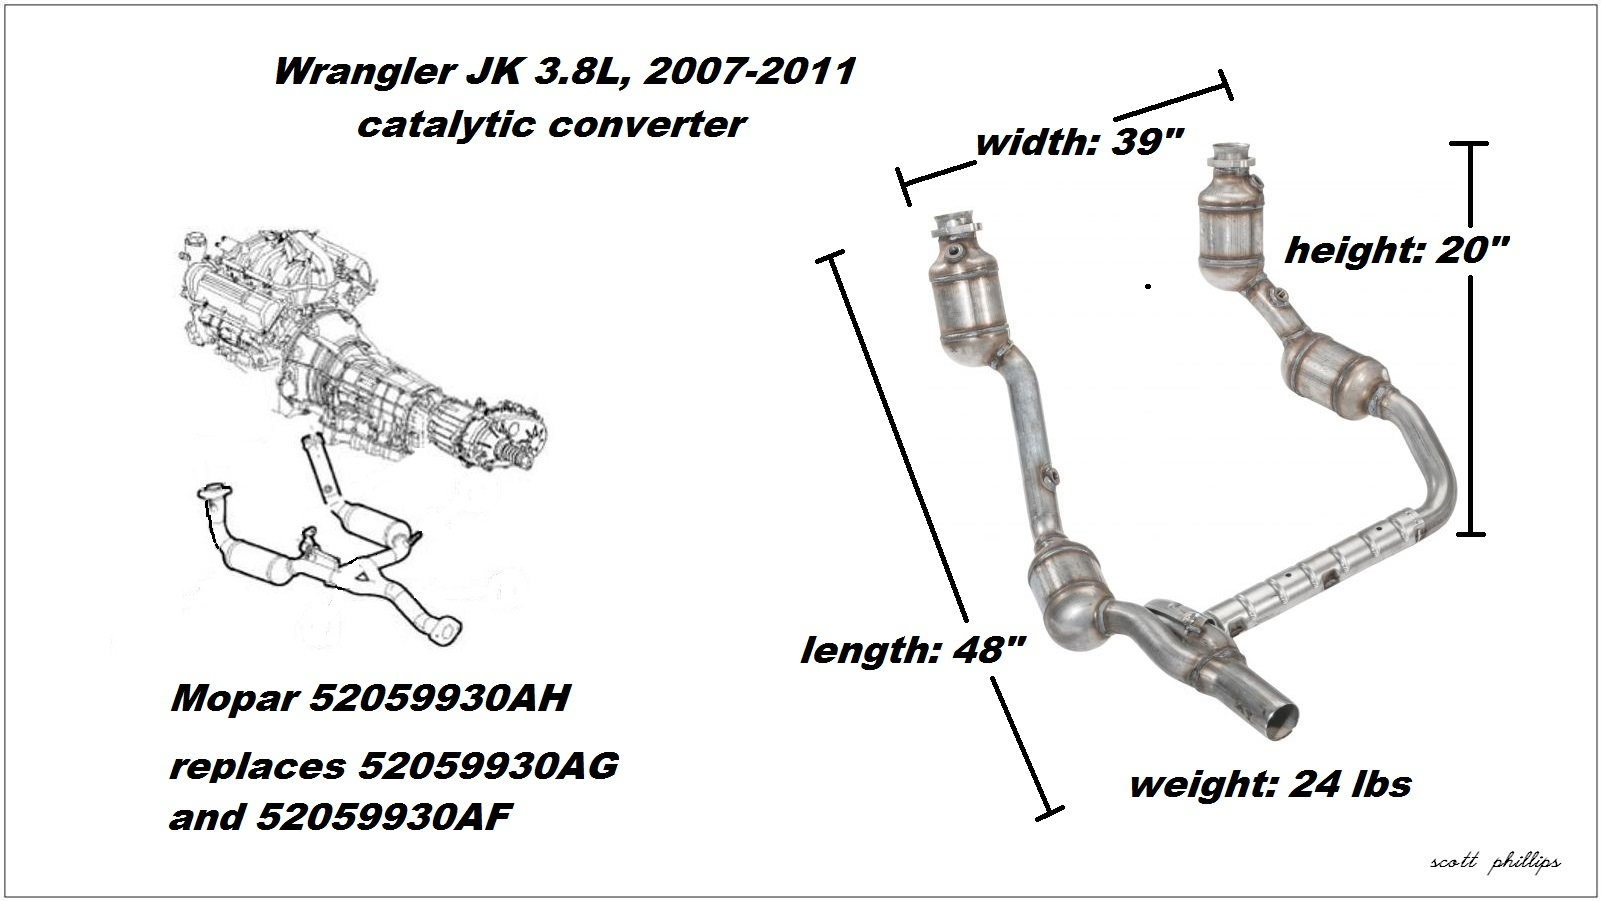 jeep wrangler jk 2007 to present how to replace catalytic figure 1 3 8l catalytic converter assembly